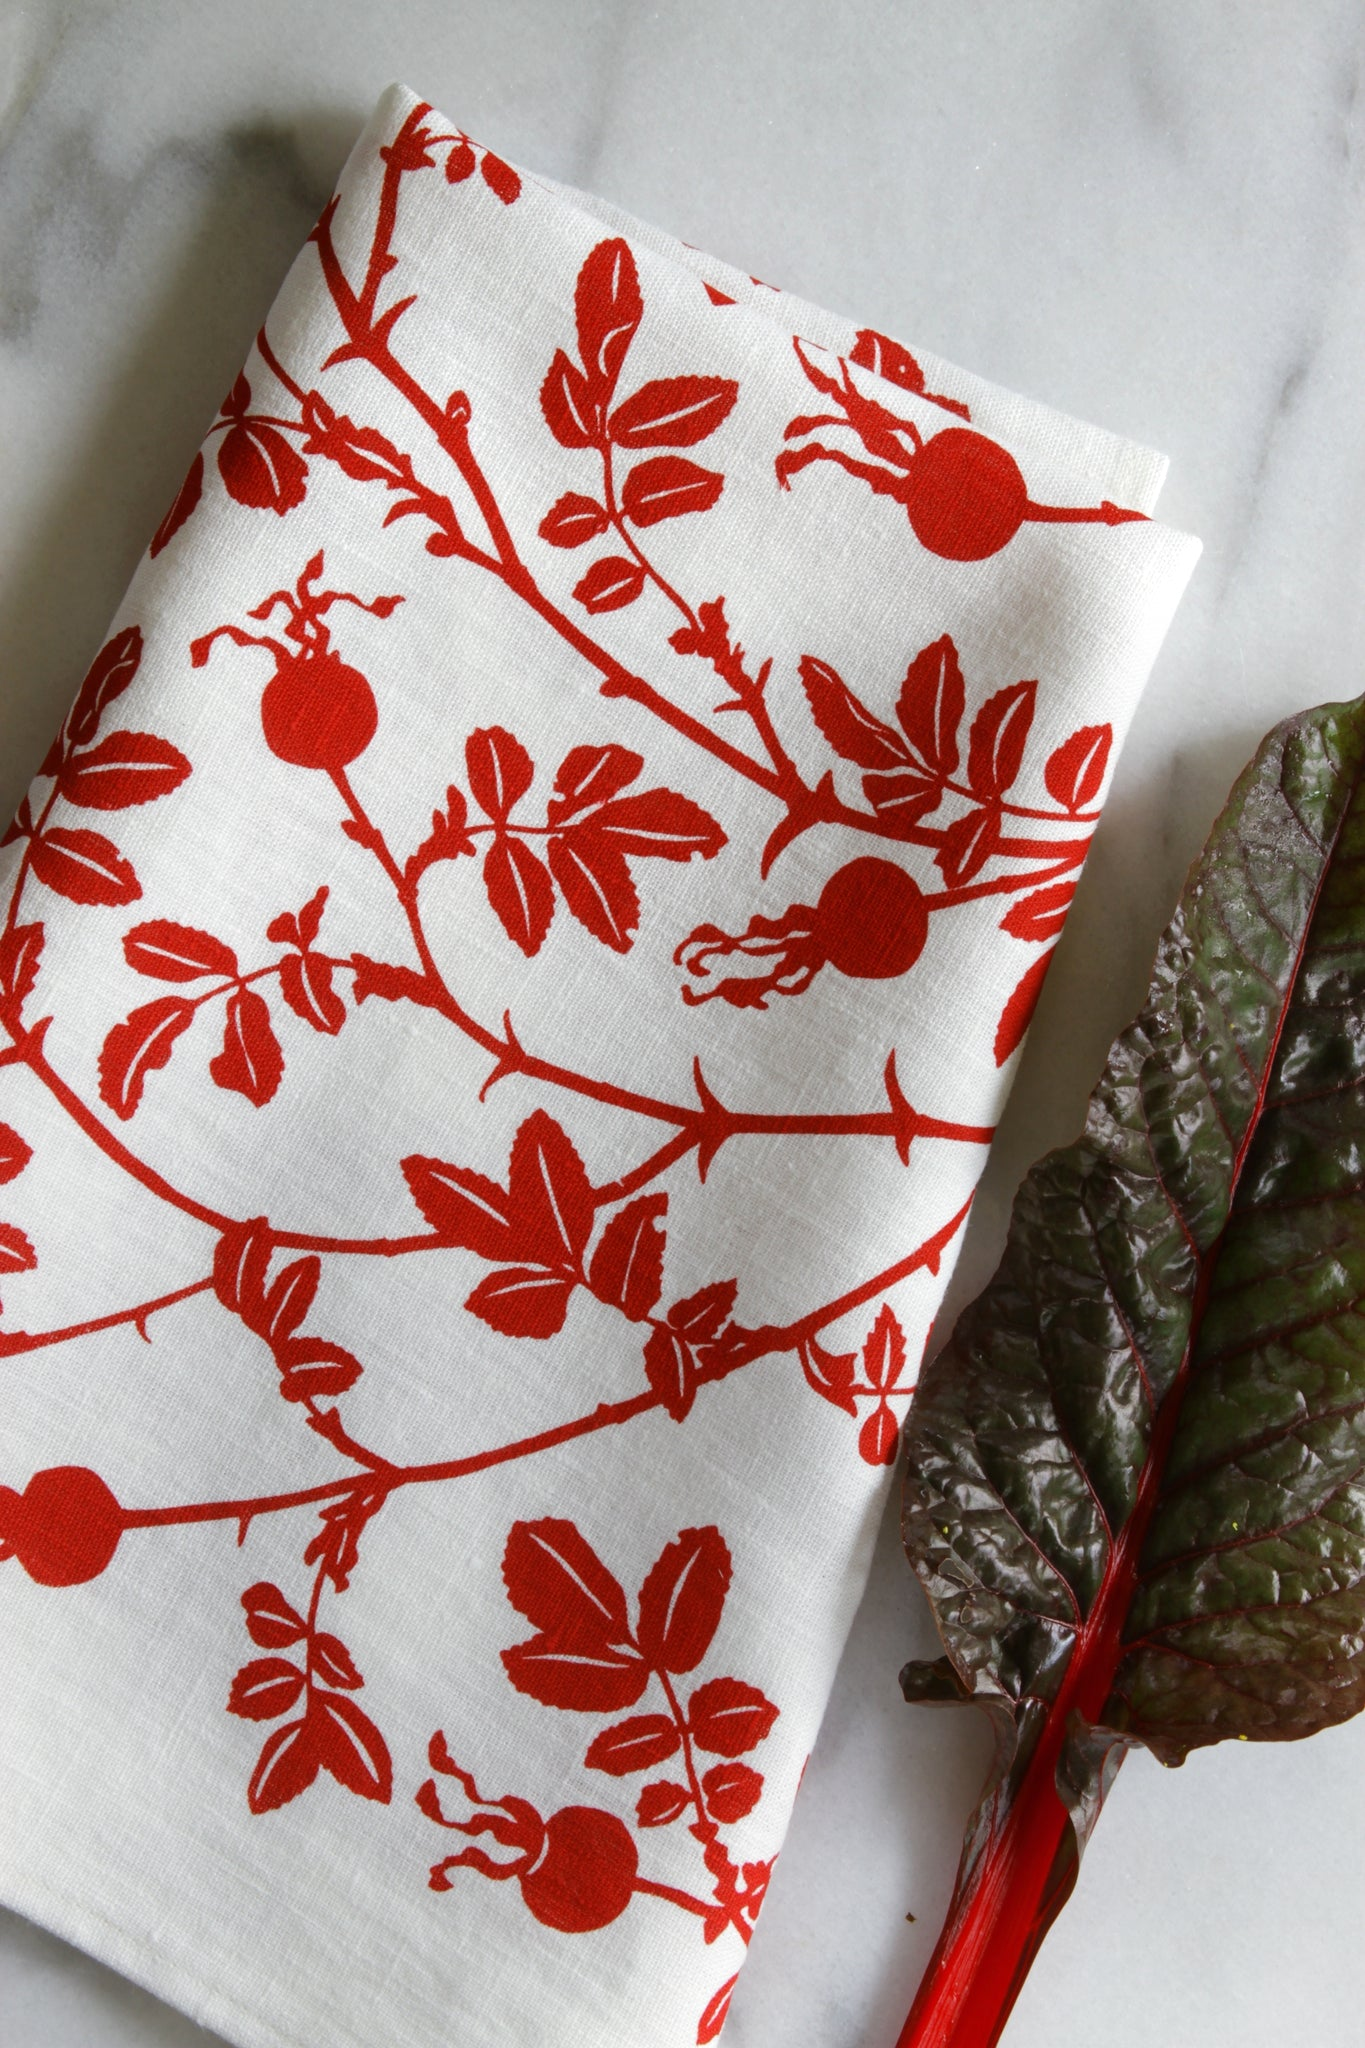 Nootka Rose Kitchen Towel in Red on White Linen